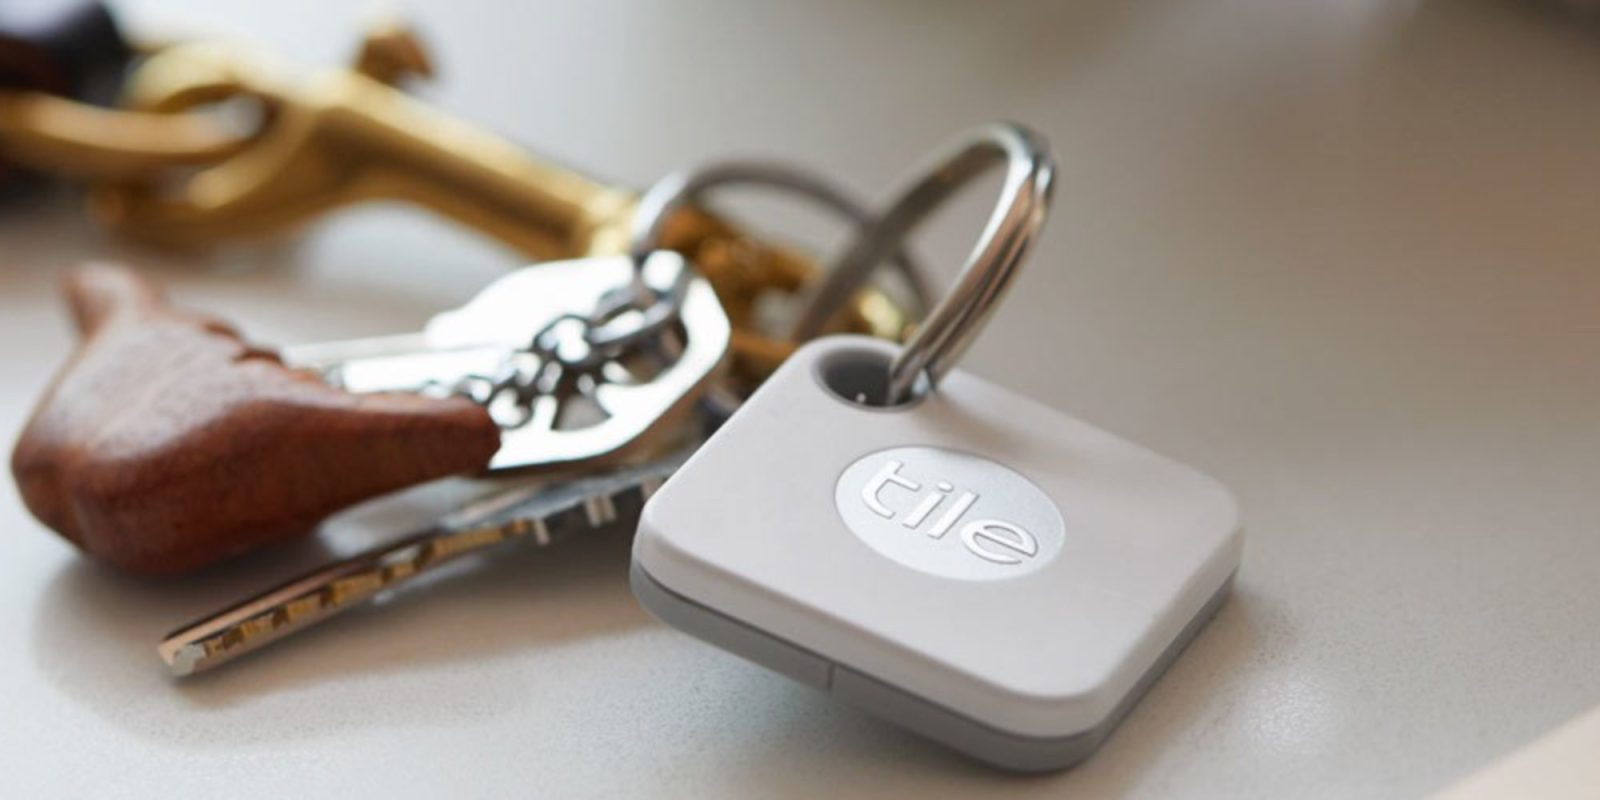 Tile Mate helps locate your missing keys and is on sale for $20 (Reg. $25)